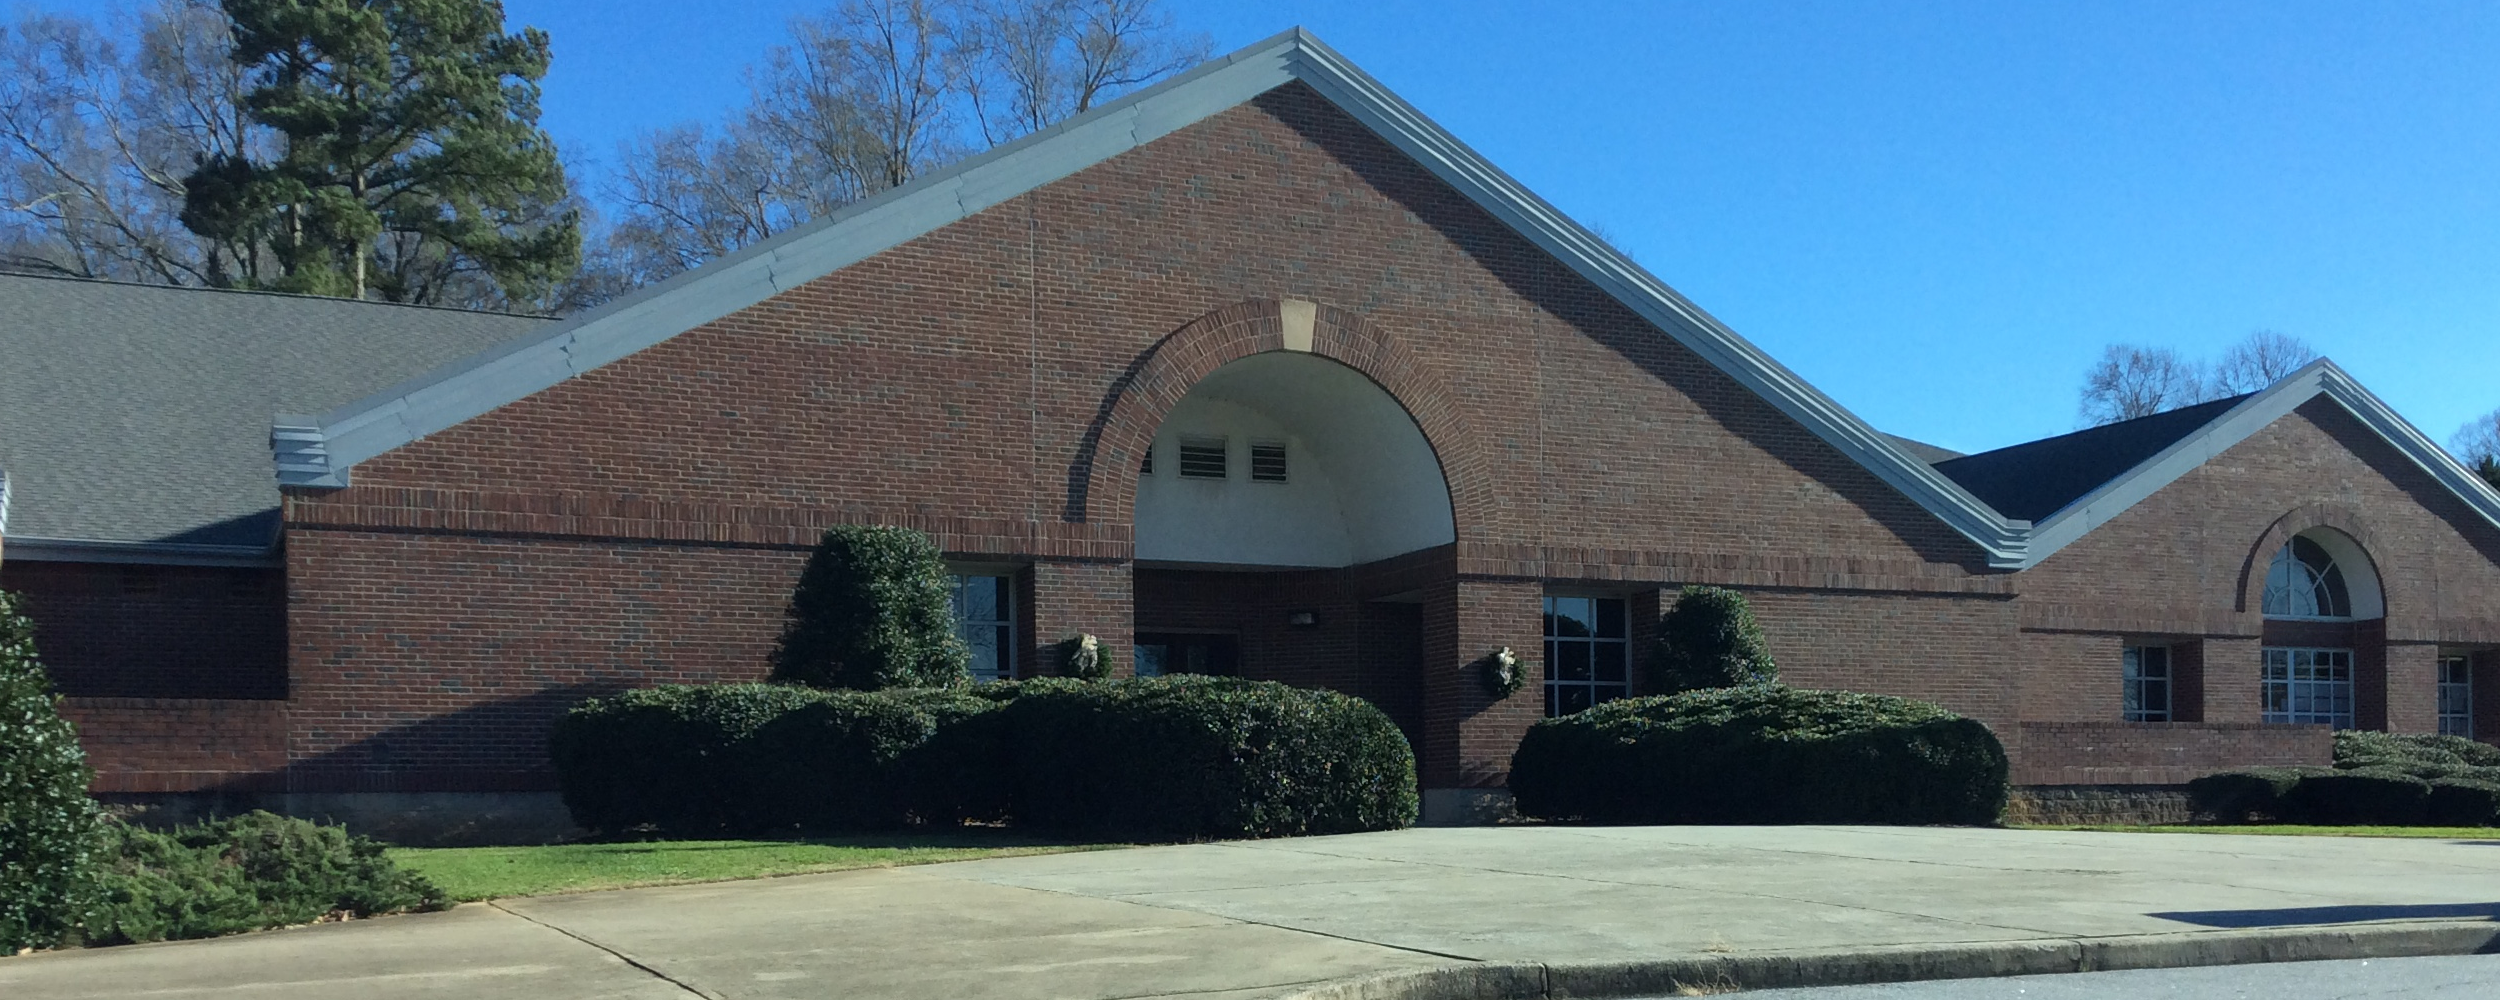 Laruens County Library